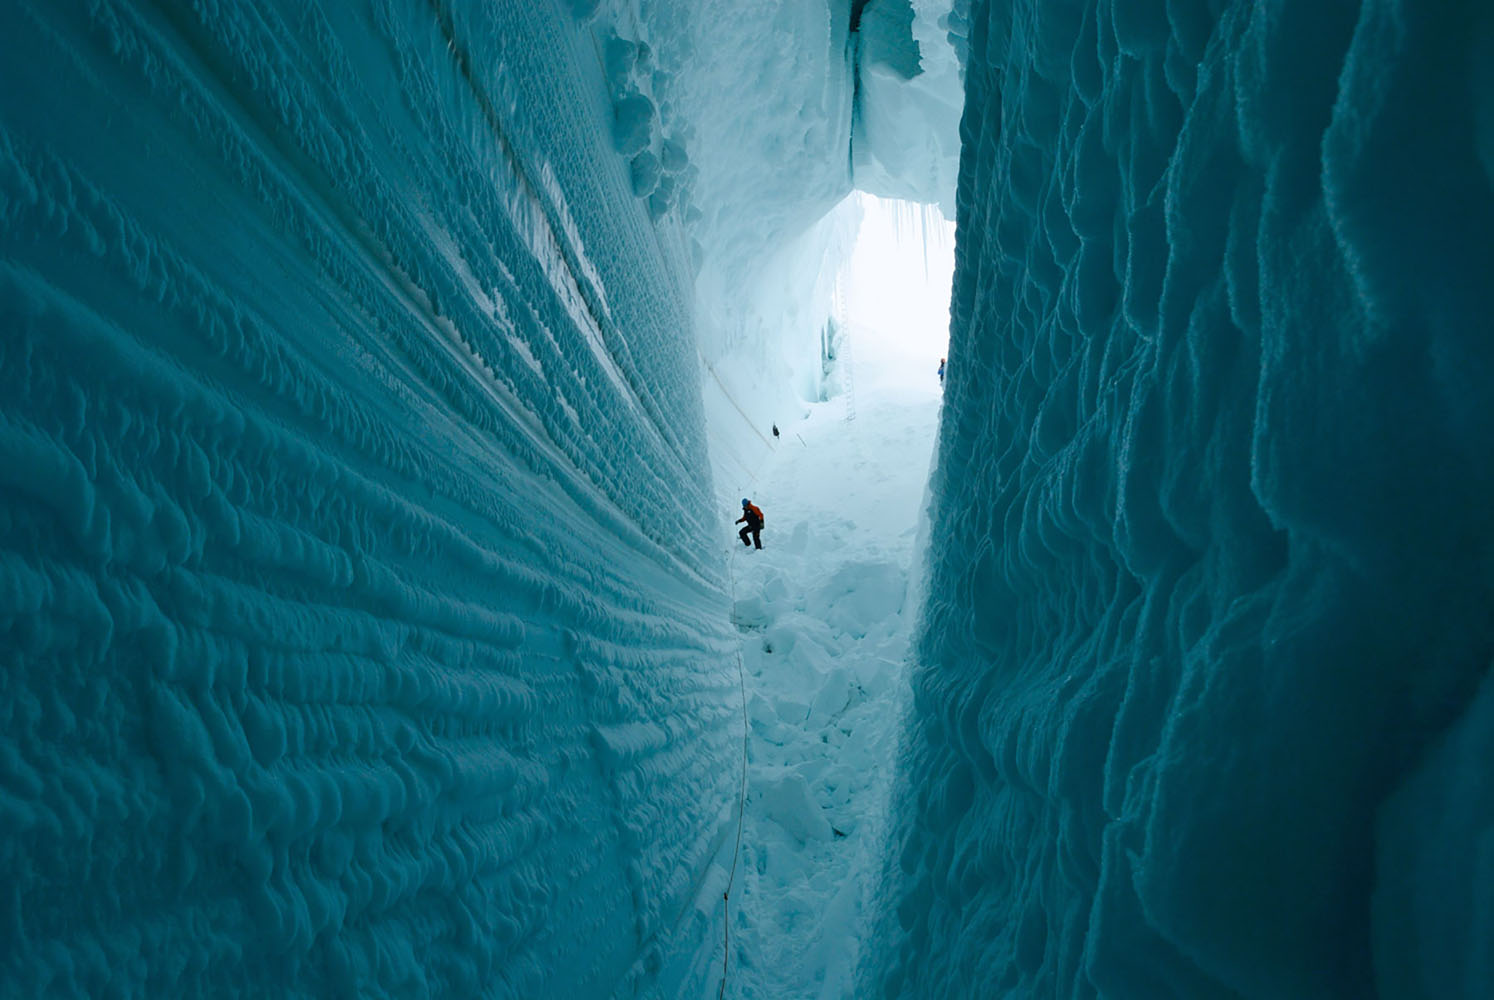 Researchers explore a deep crevice in Antarctica.